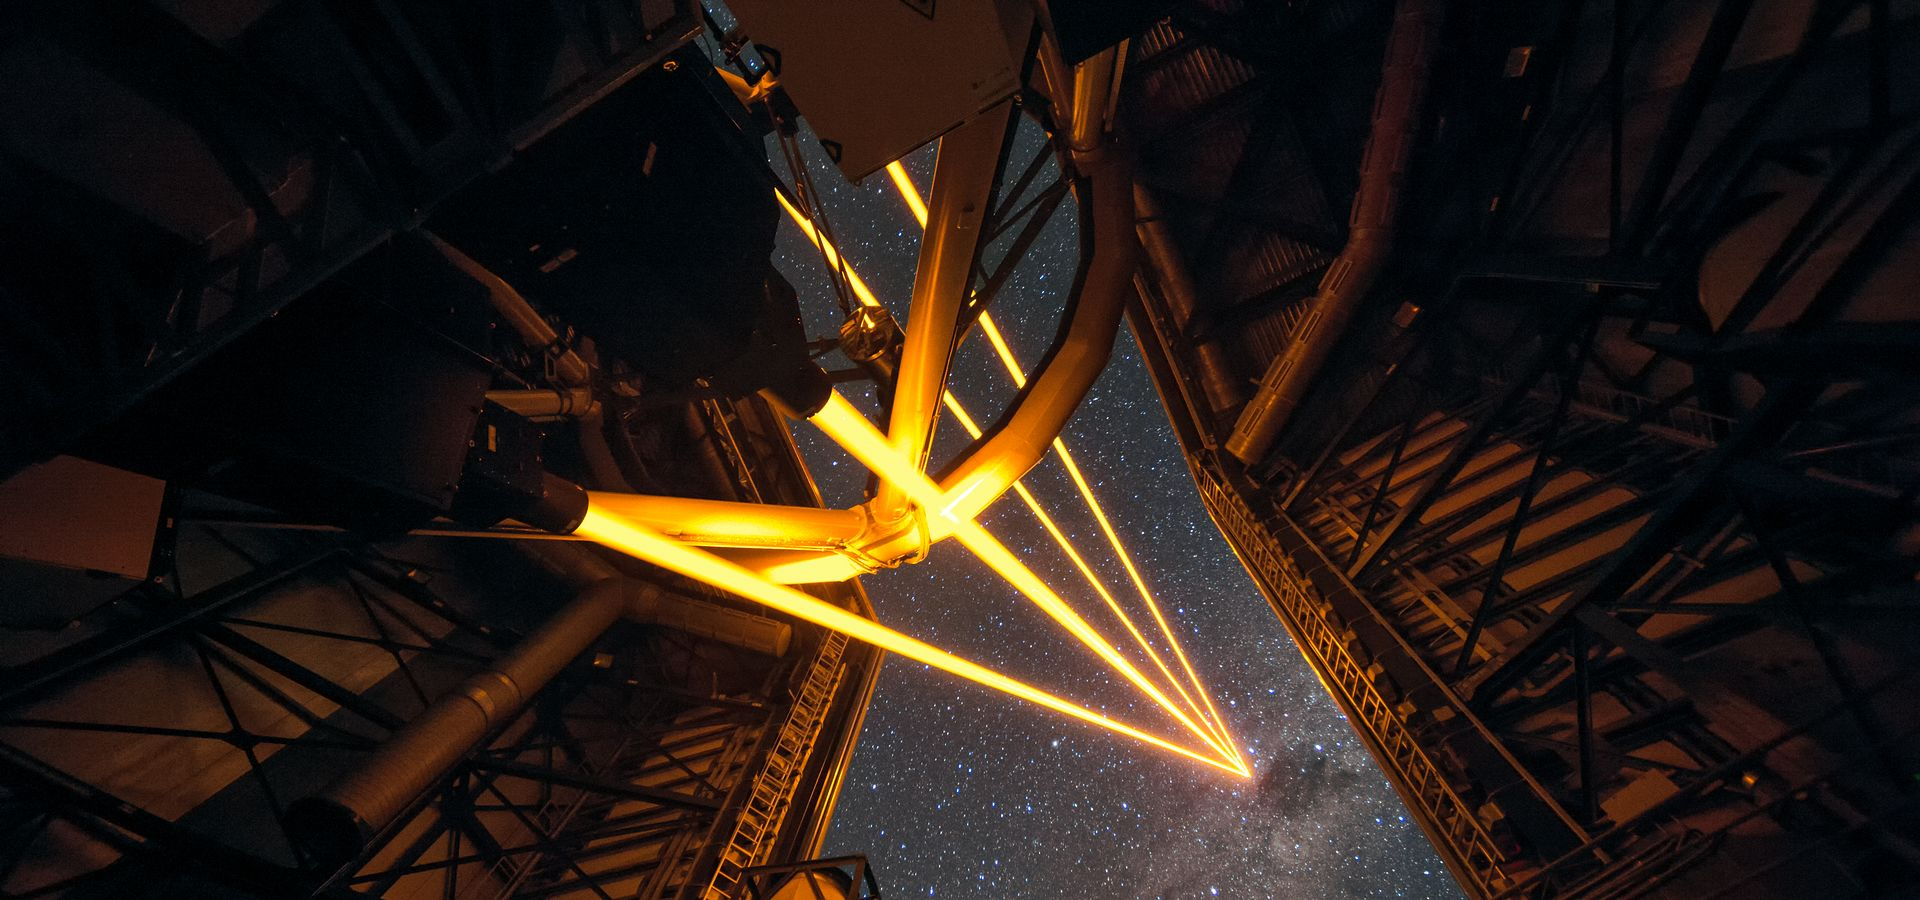 Behind the scenes of the Adaptive Optics Facility